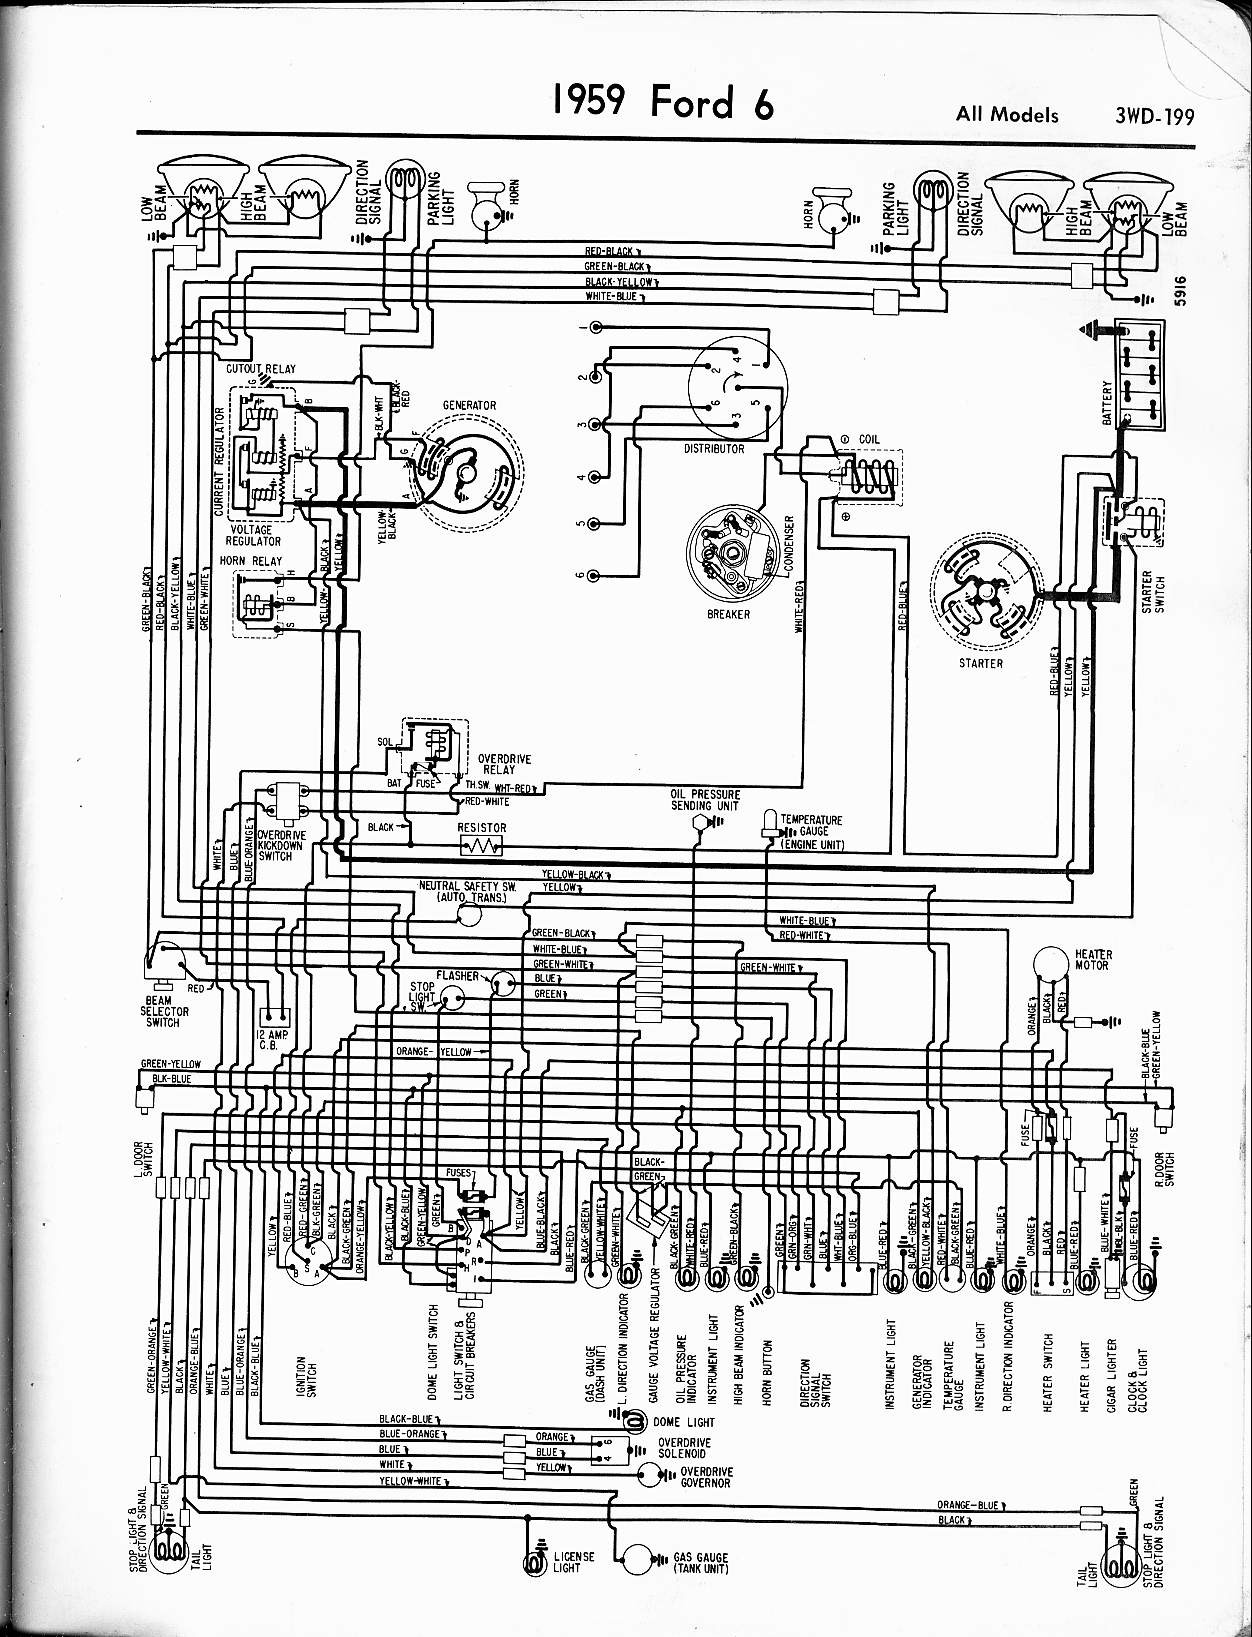 Ford Truck Wiring Diagrams 57 65 ford Wiring Diagrams Of Ford Truck Wiring Diagrams